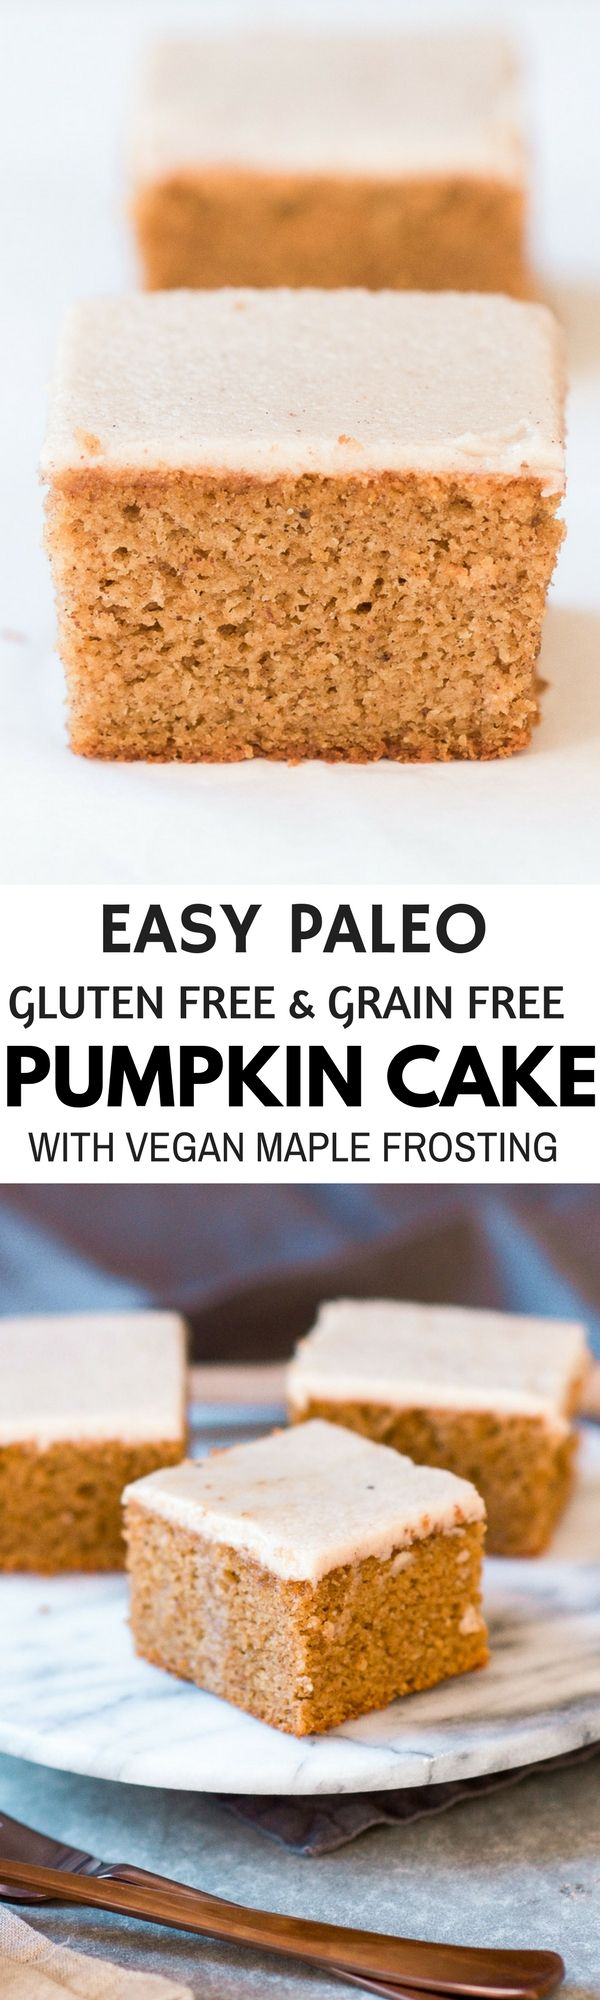 1000+ ideas about Paleo Frosting on Pinterest | Dairy Free Frosting ...